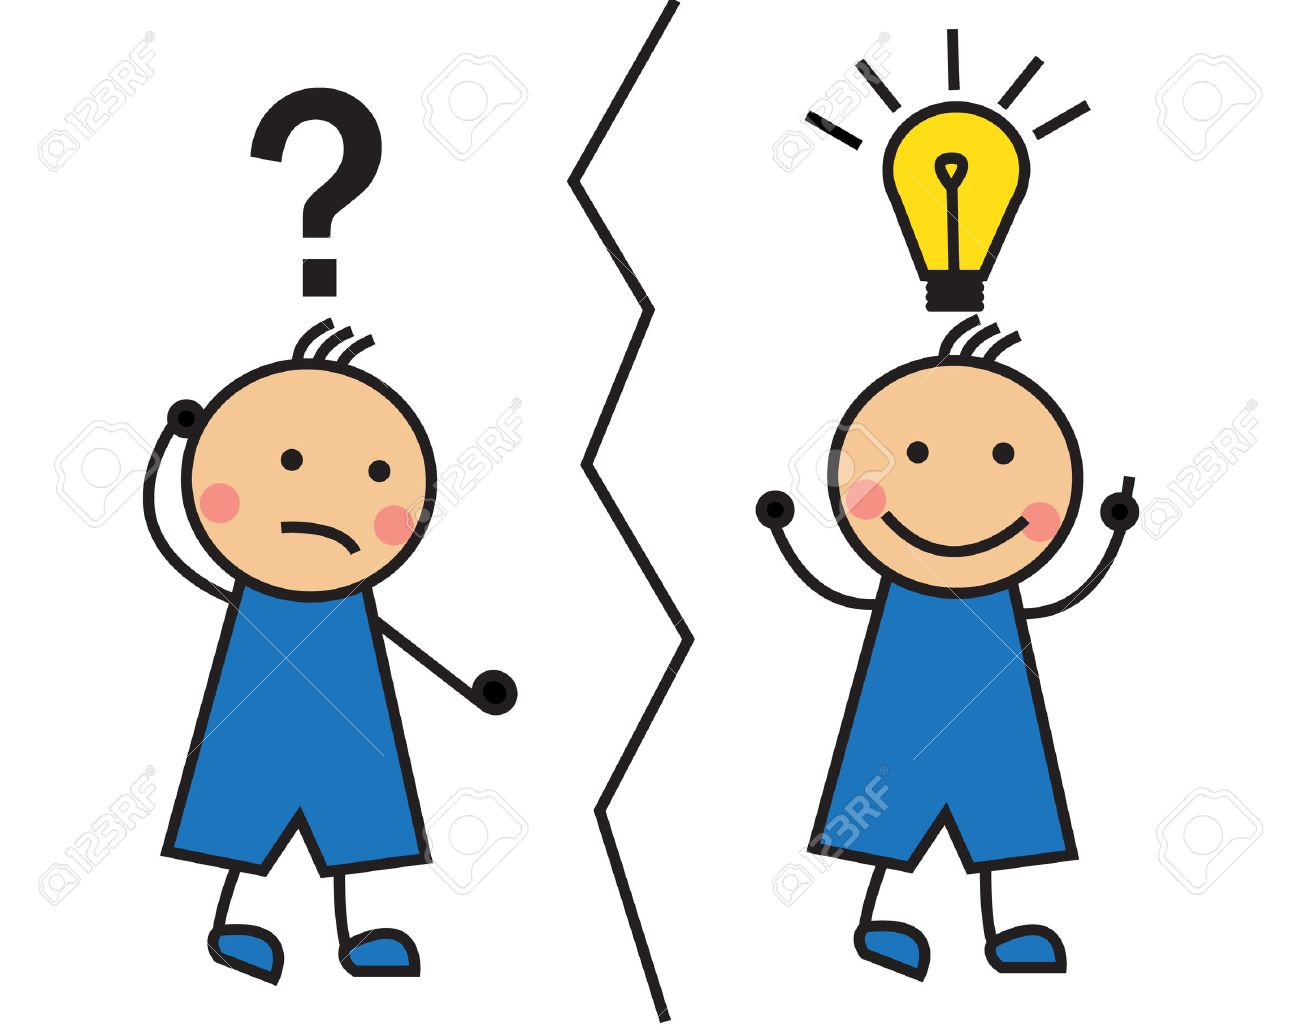 Cartoon Man With A Question Mark And Light Bulb Over His Head Stock Vector